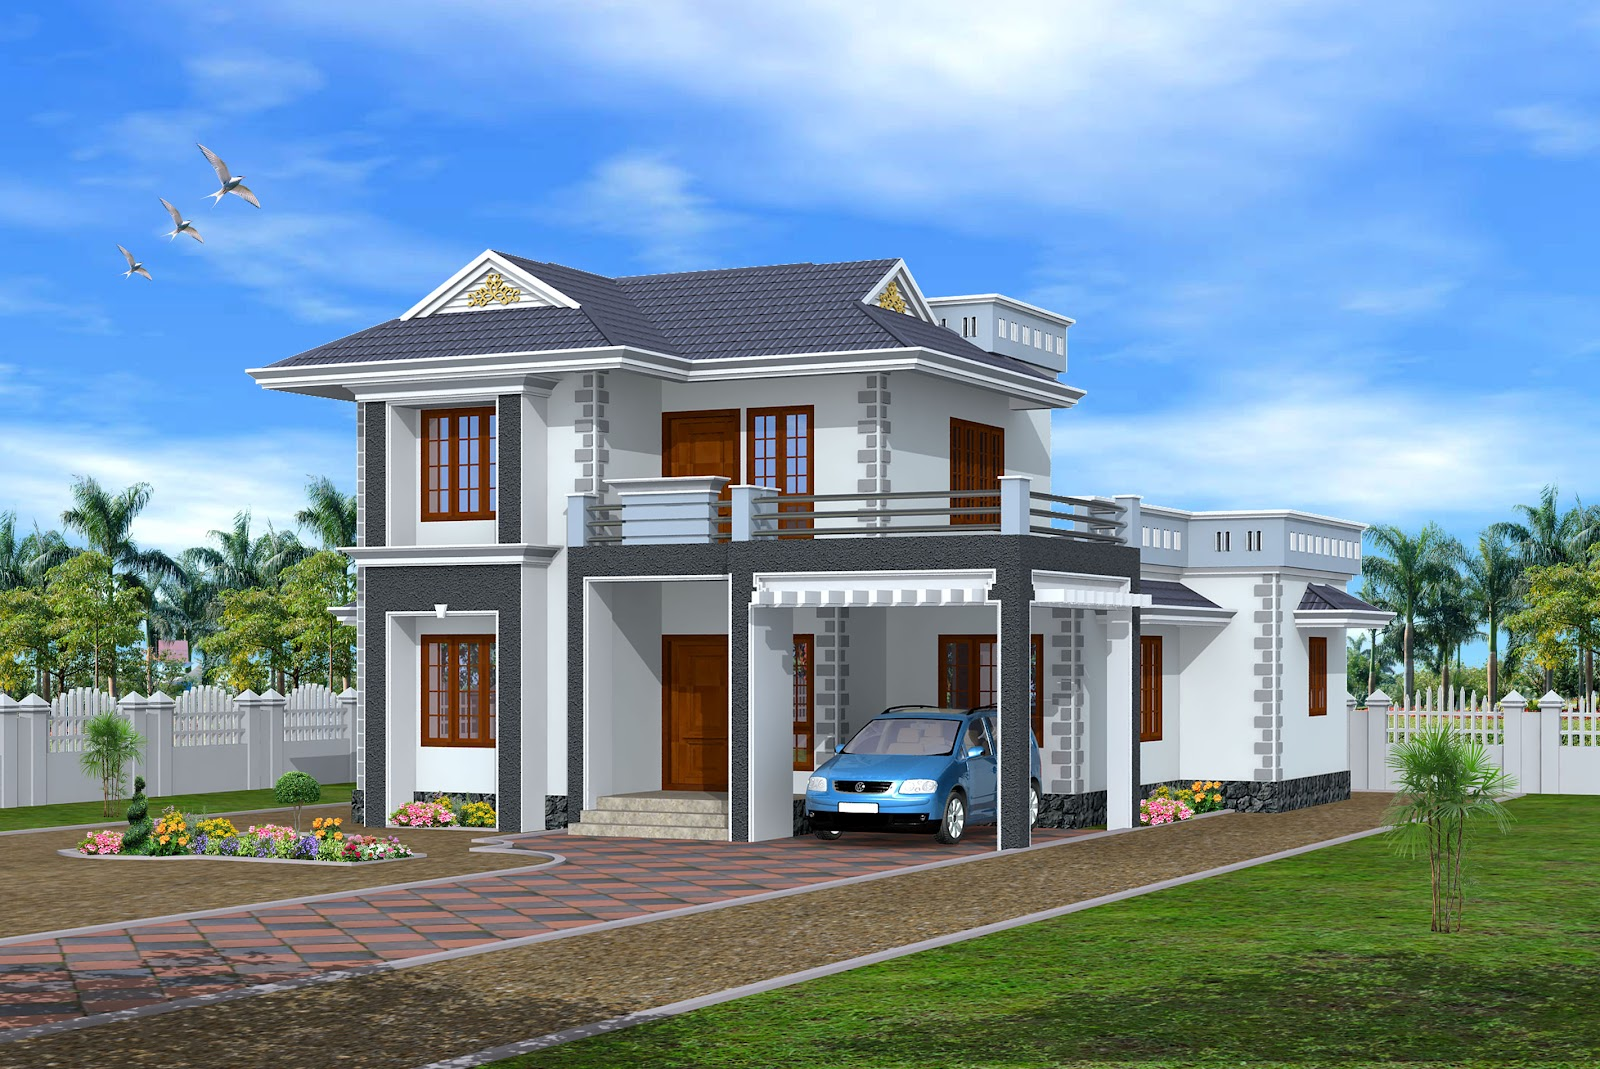 New home designs latest modern homes exterior designs views for Latest model home design